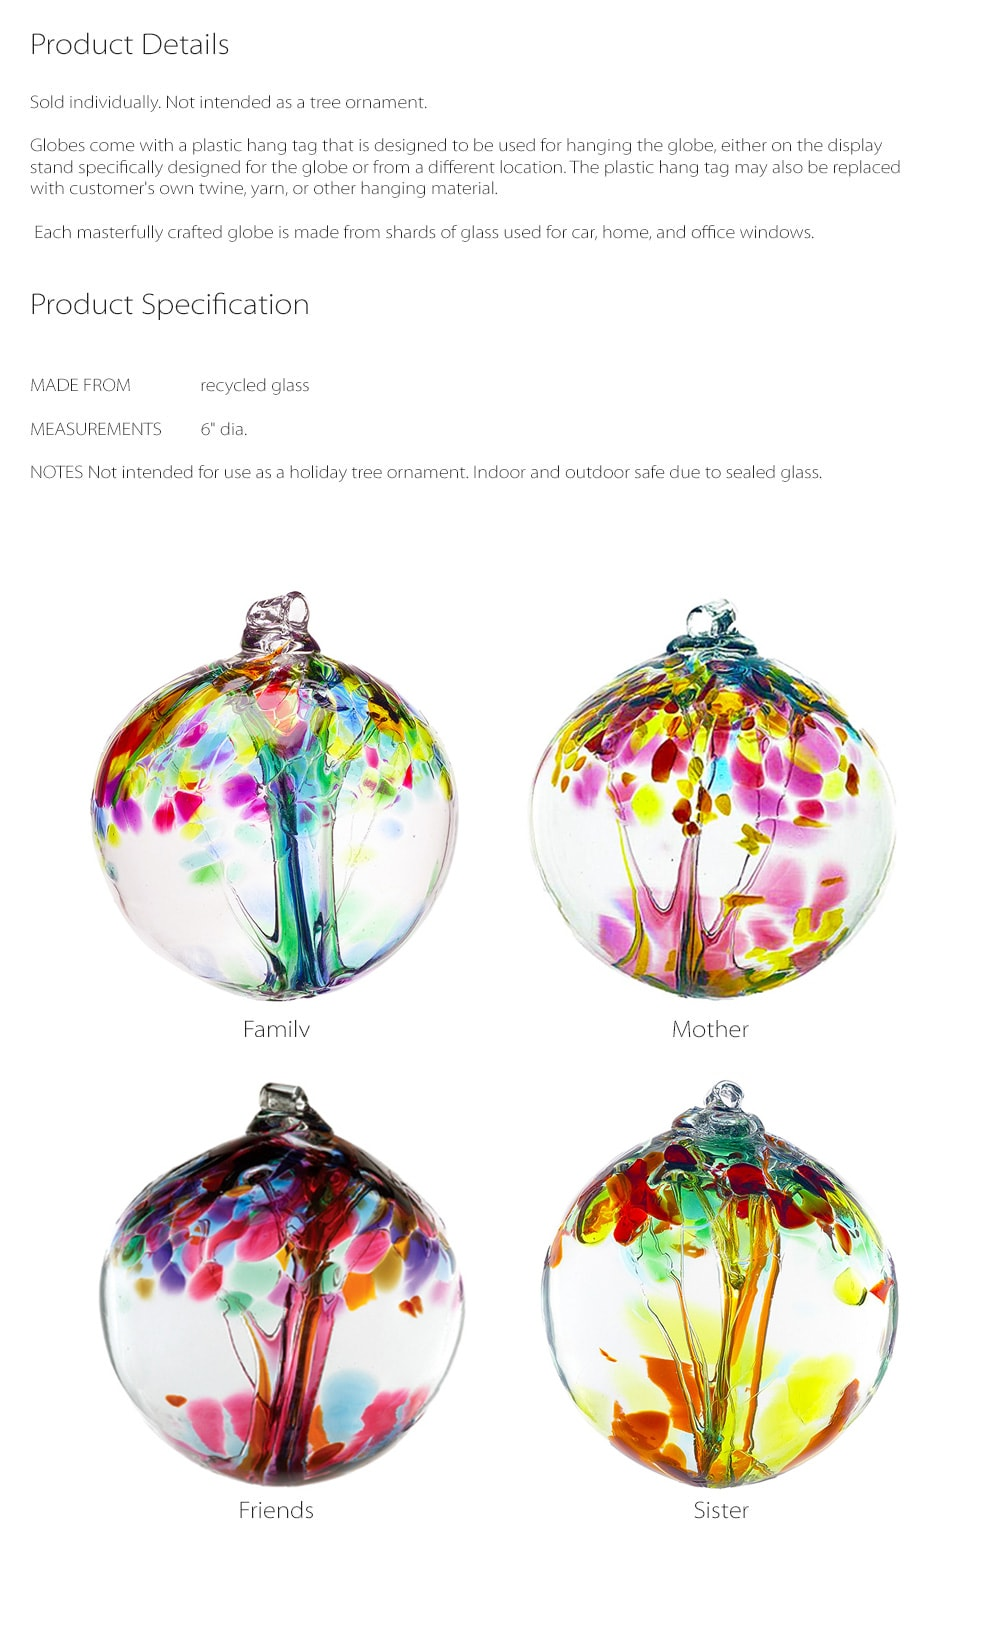 Recycled Glass Tree Globes - Relationships Celebrate Your Bonds With Family And Friends